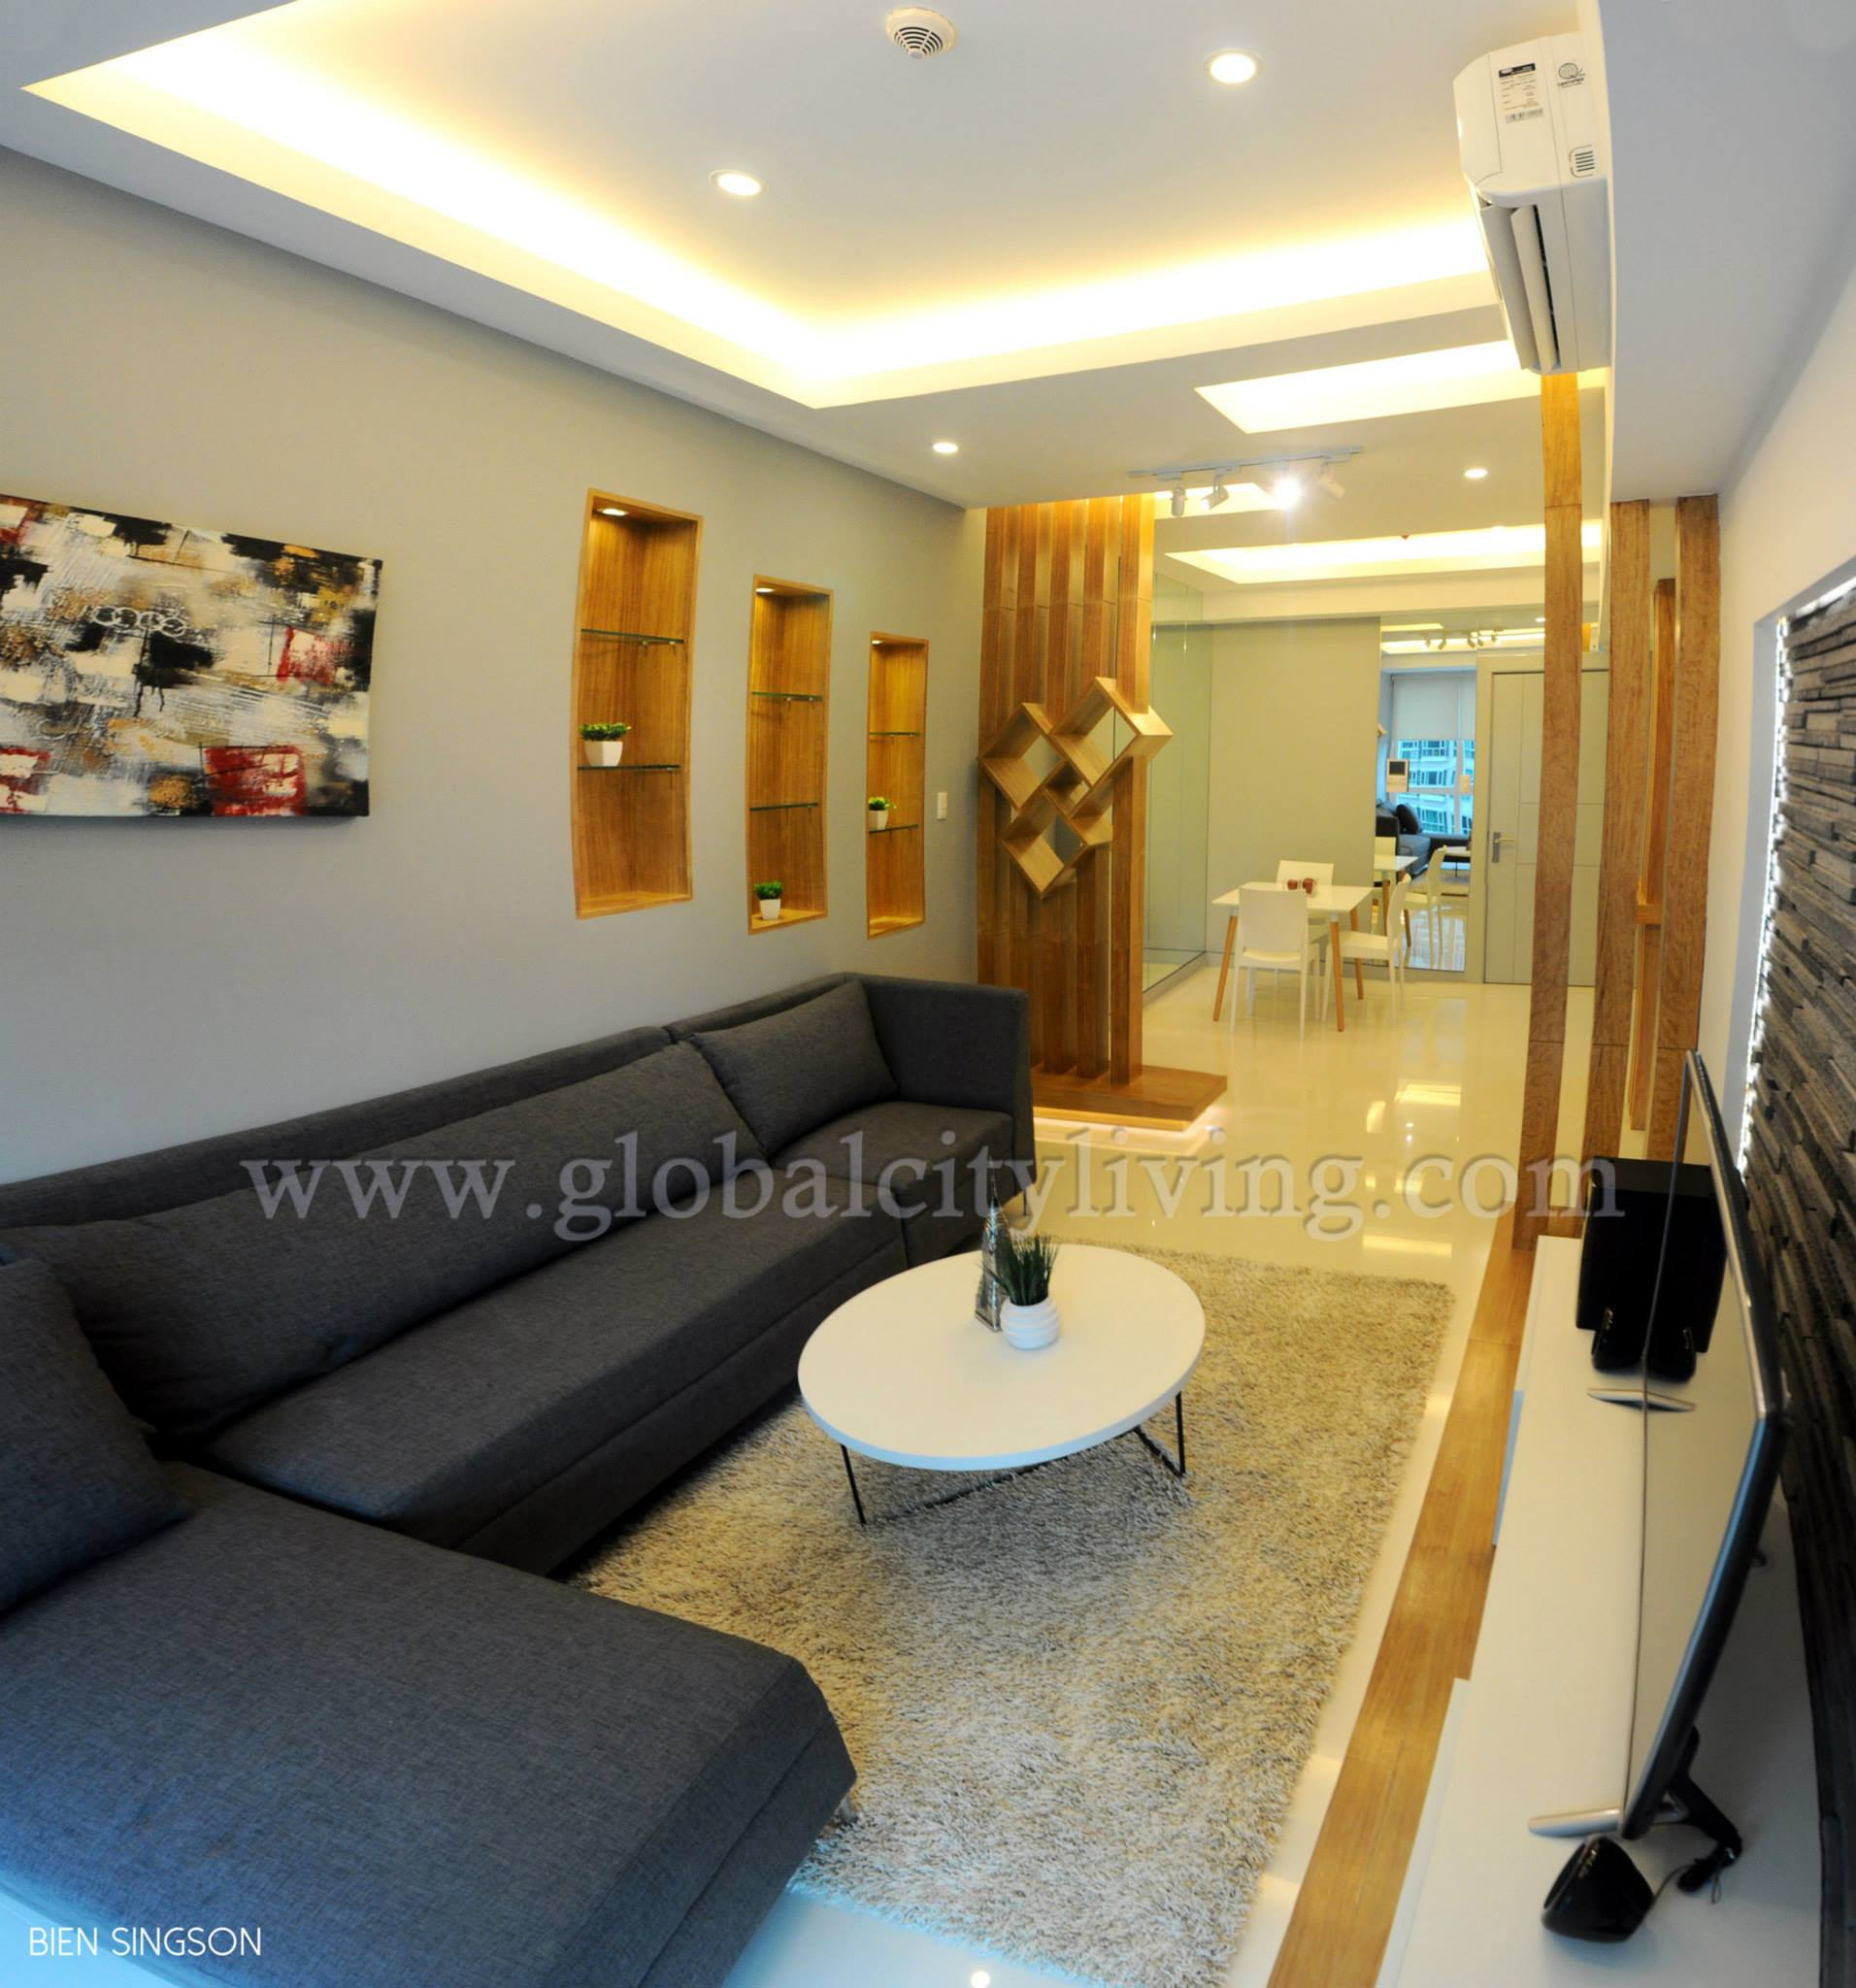 For RENT: Fully Furnished 1 Bedroom Condo Unit At 8 Forbes